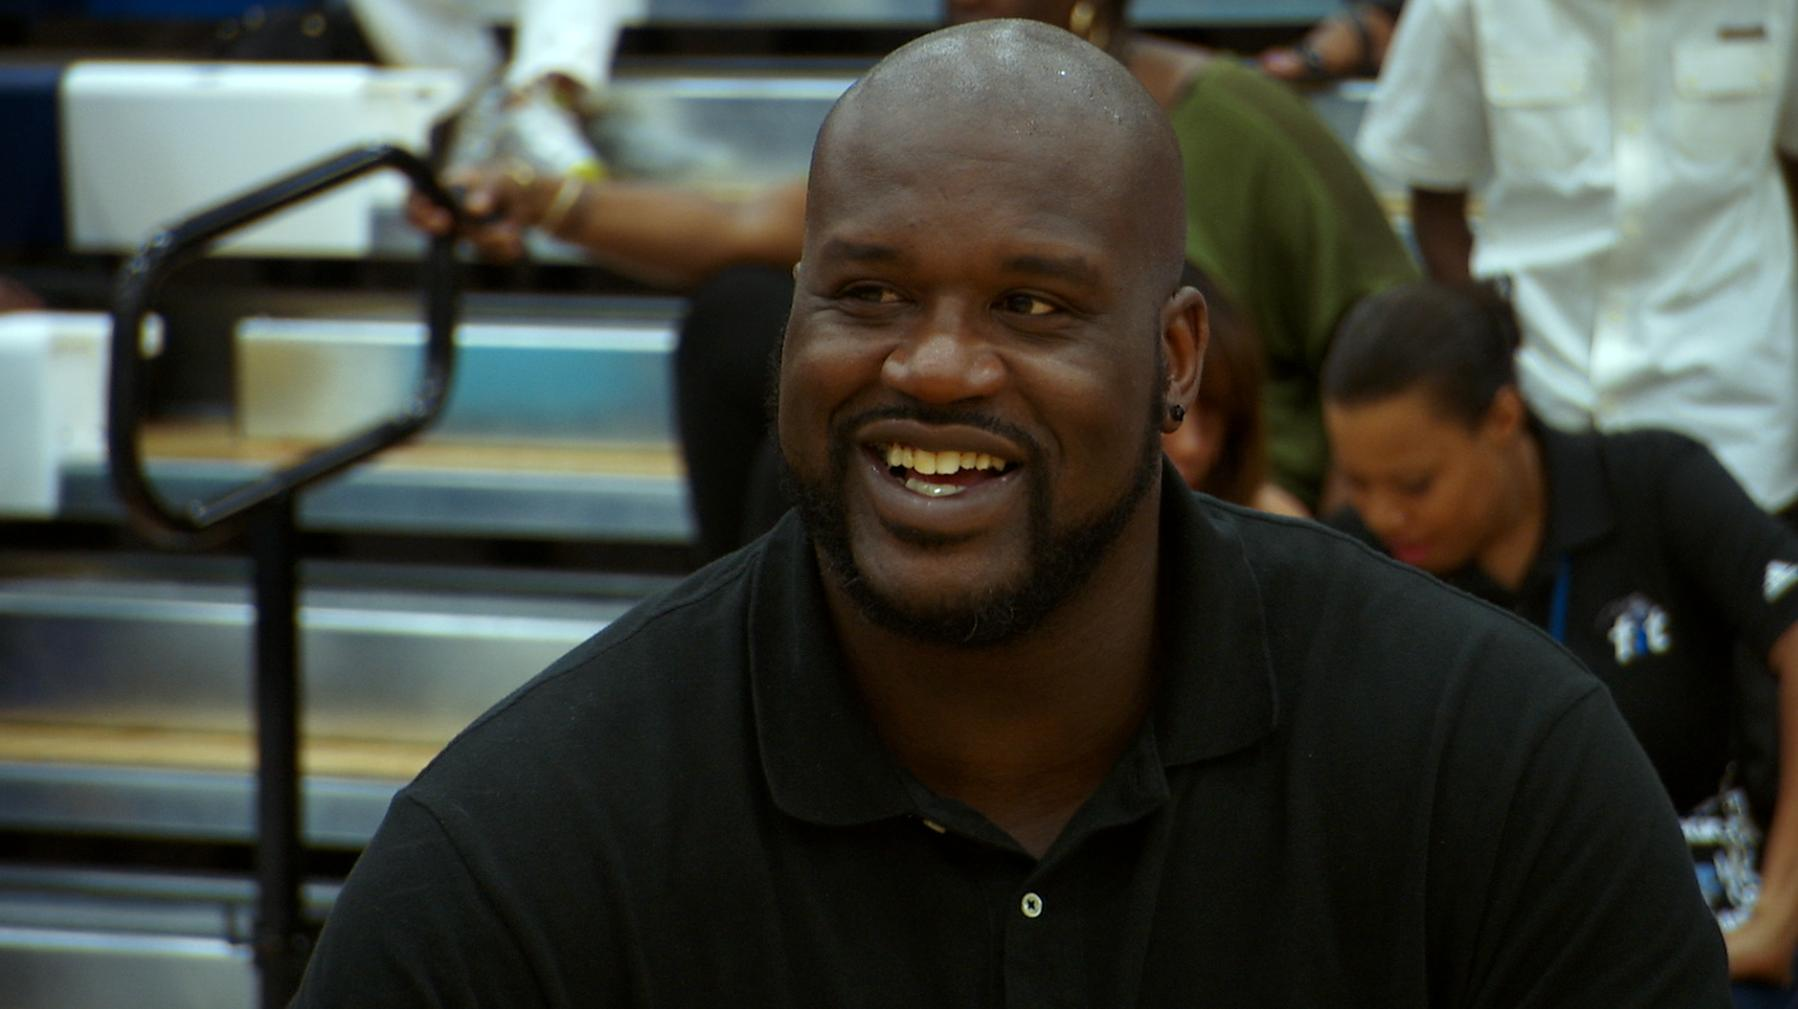 image1 Miami Crew shoots NBA Moms vs NFL Moms in basketball with Shaq!